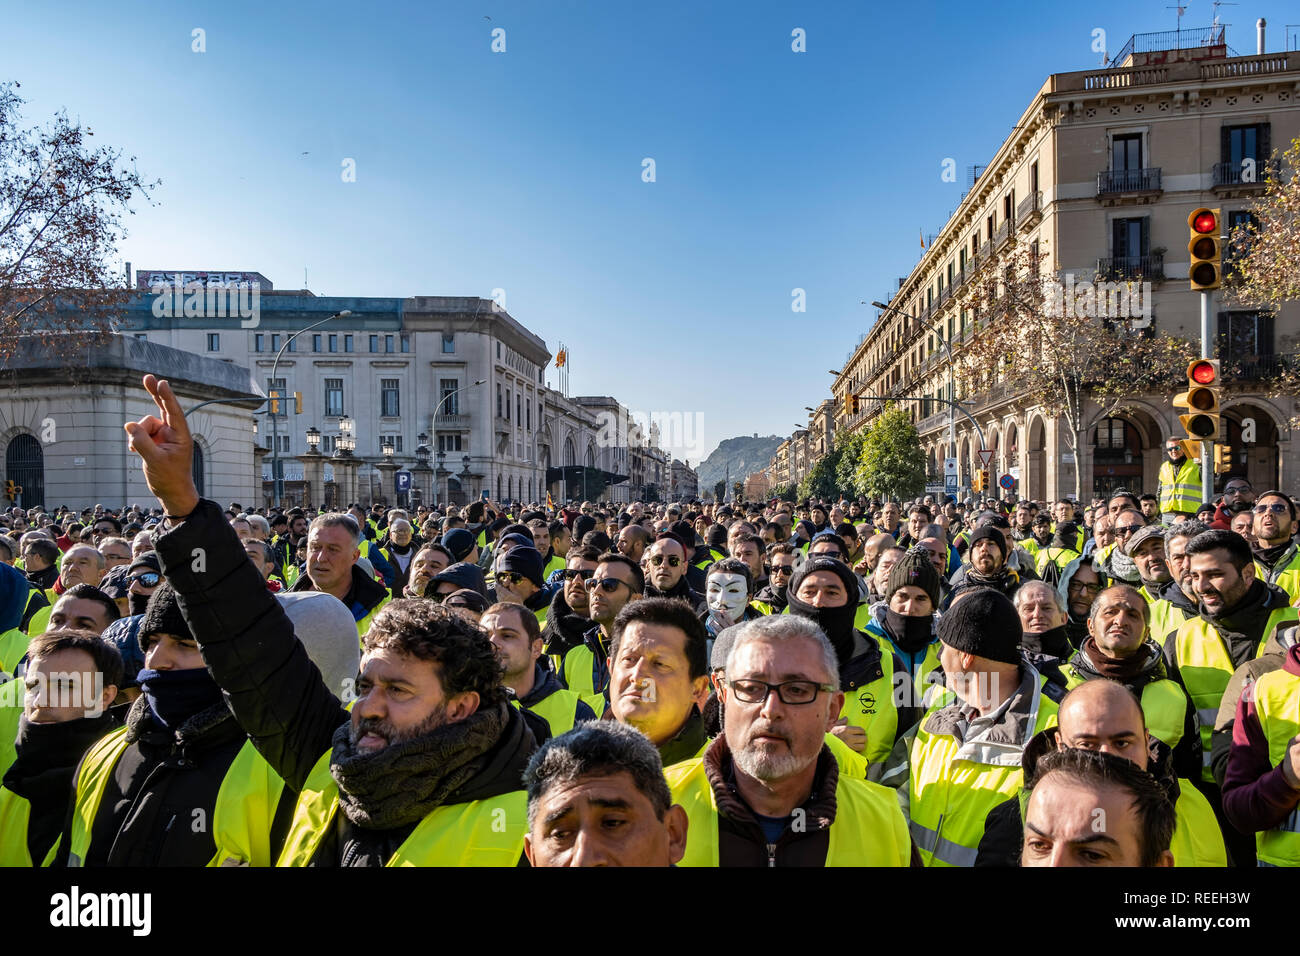 A crowd of taxi drivers with yellow vests are seen gathering in front of the Parliament of Catalonia during the strike. Fourth day strike, After not being received in the Parliament of Catalonia, the taxi drivers in demonstration have cut off traffic from Ronda del Litoral route, The pre-reservation time of the VTC services (Uber and Cabify), which the Government wants to fix in 15 minutes and the unions in 12 hours, it is the strong point of the disagreement. Stock Photo